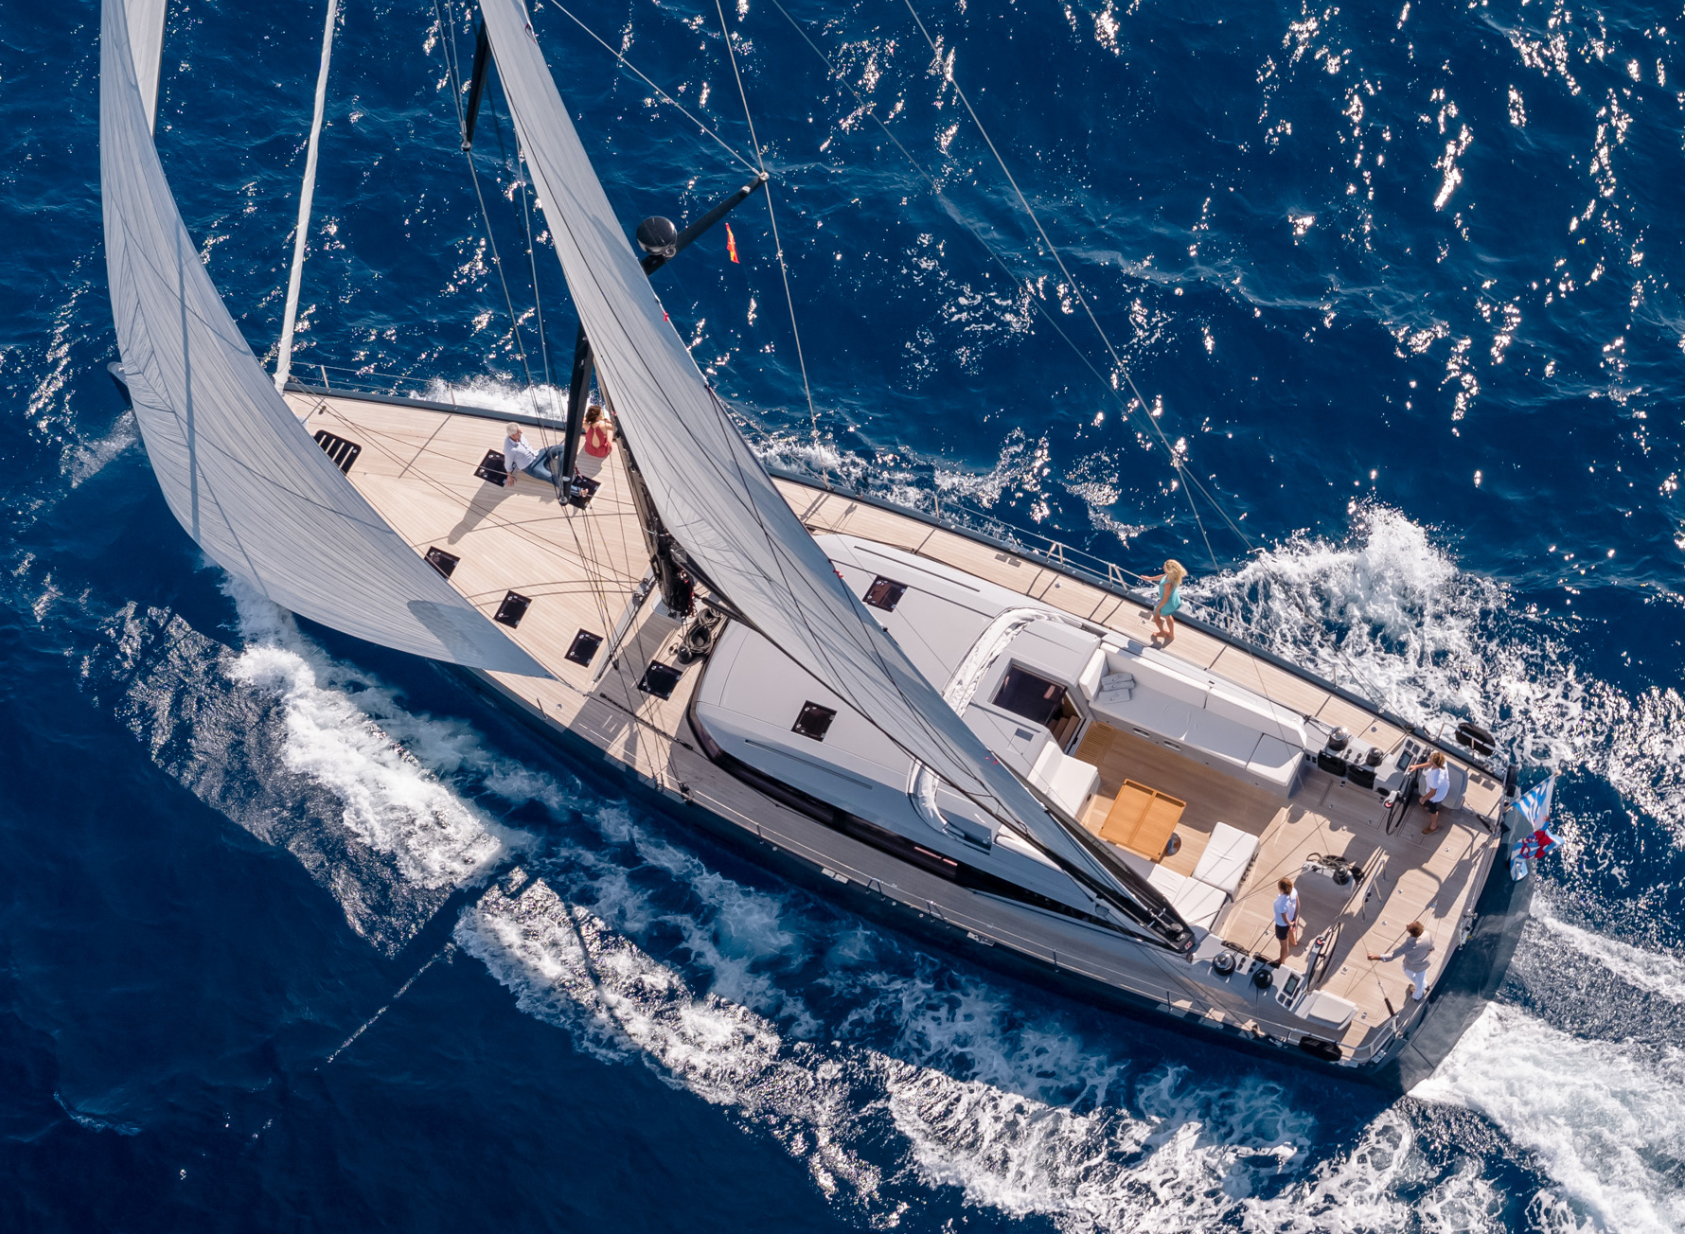 Aerial view of the sailing yacht J SIX